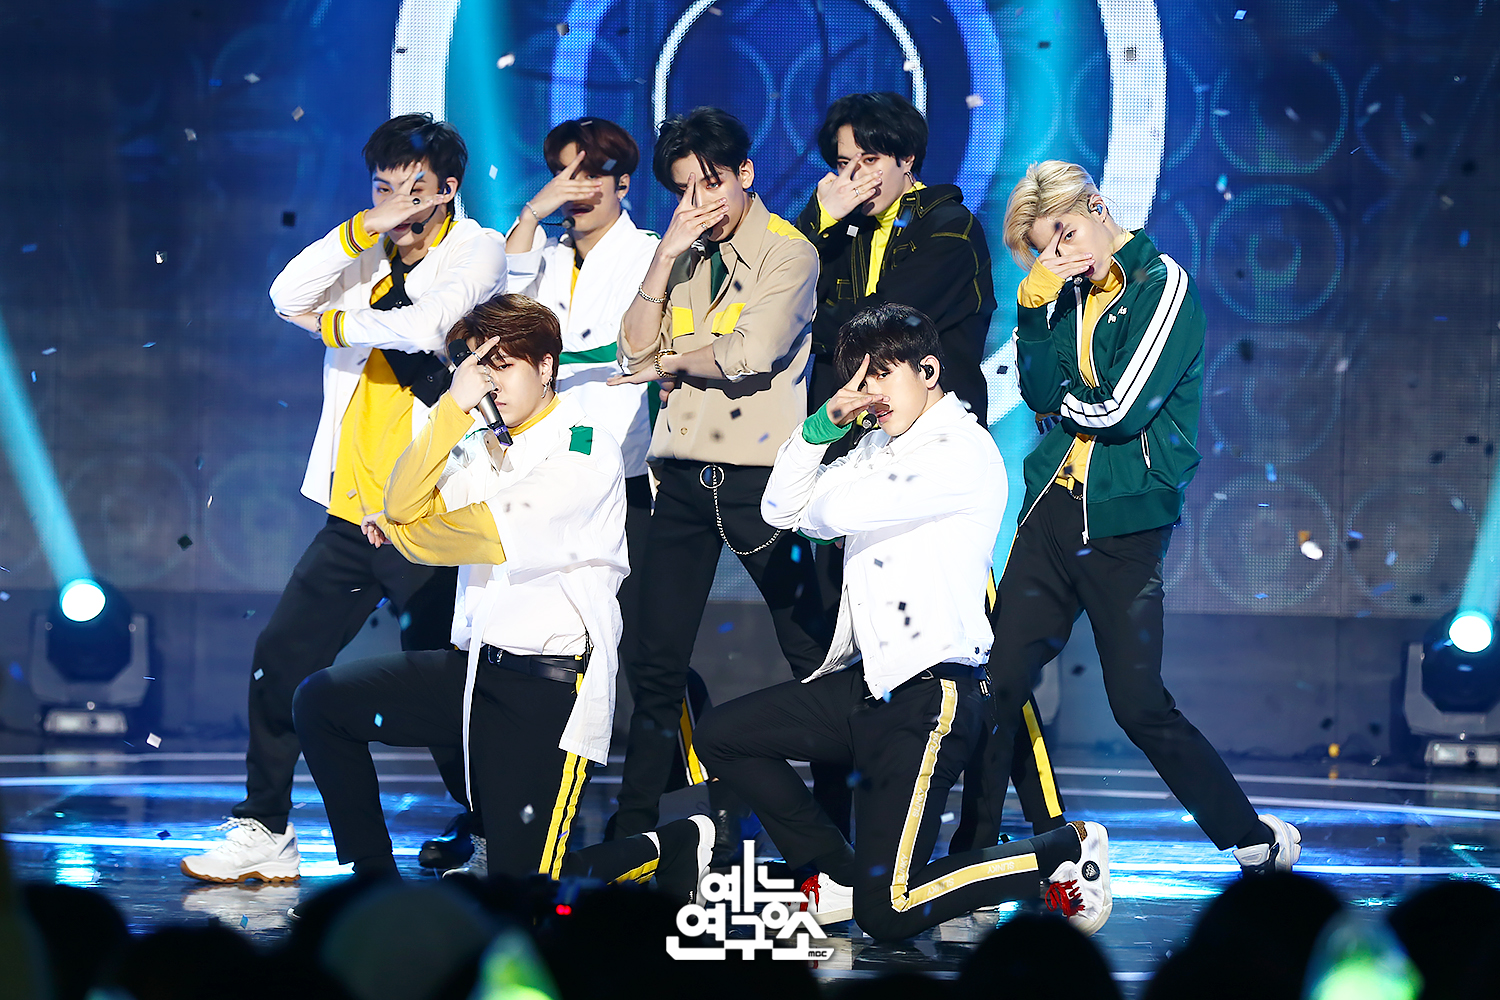 LOOK] HQ 180331 GOT7 - MBC Show Music Core :: bam502 #BamBam